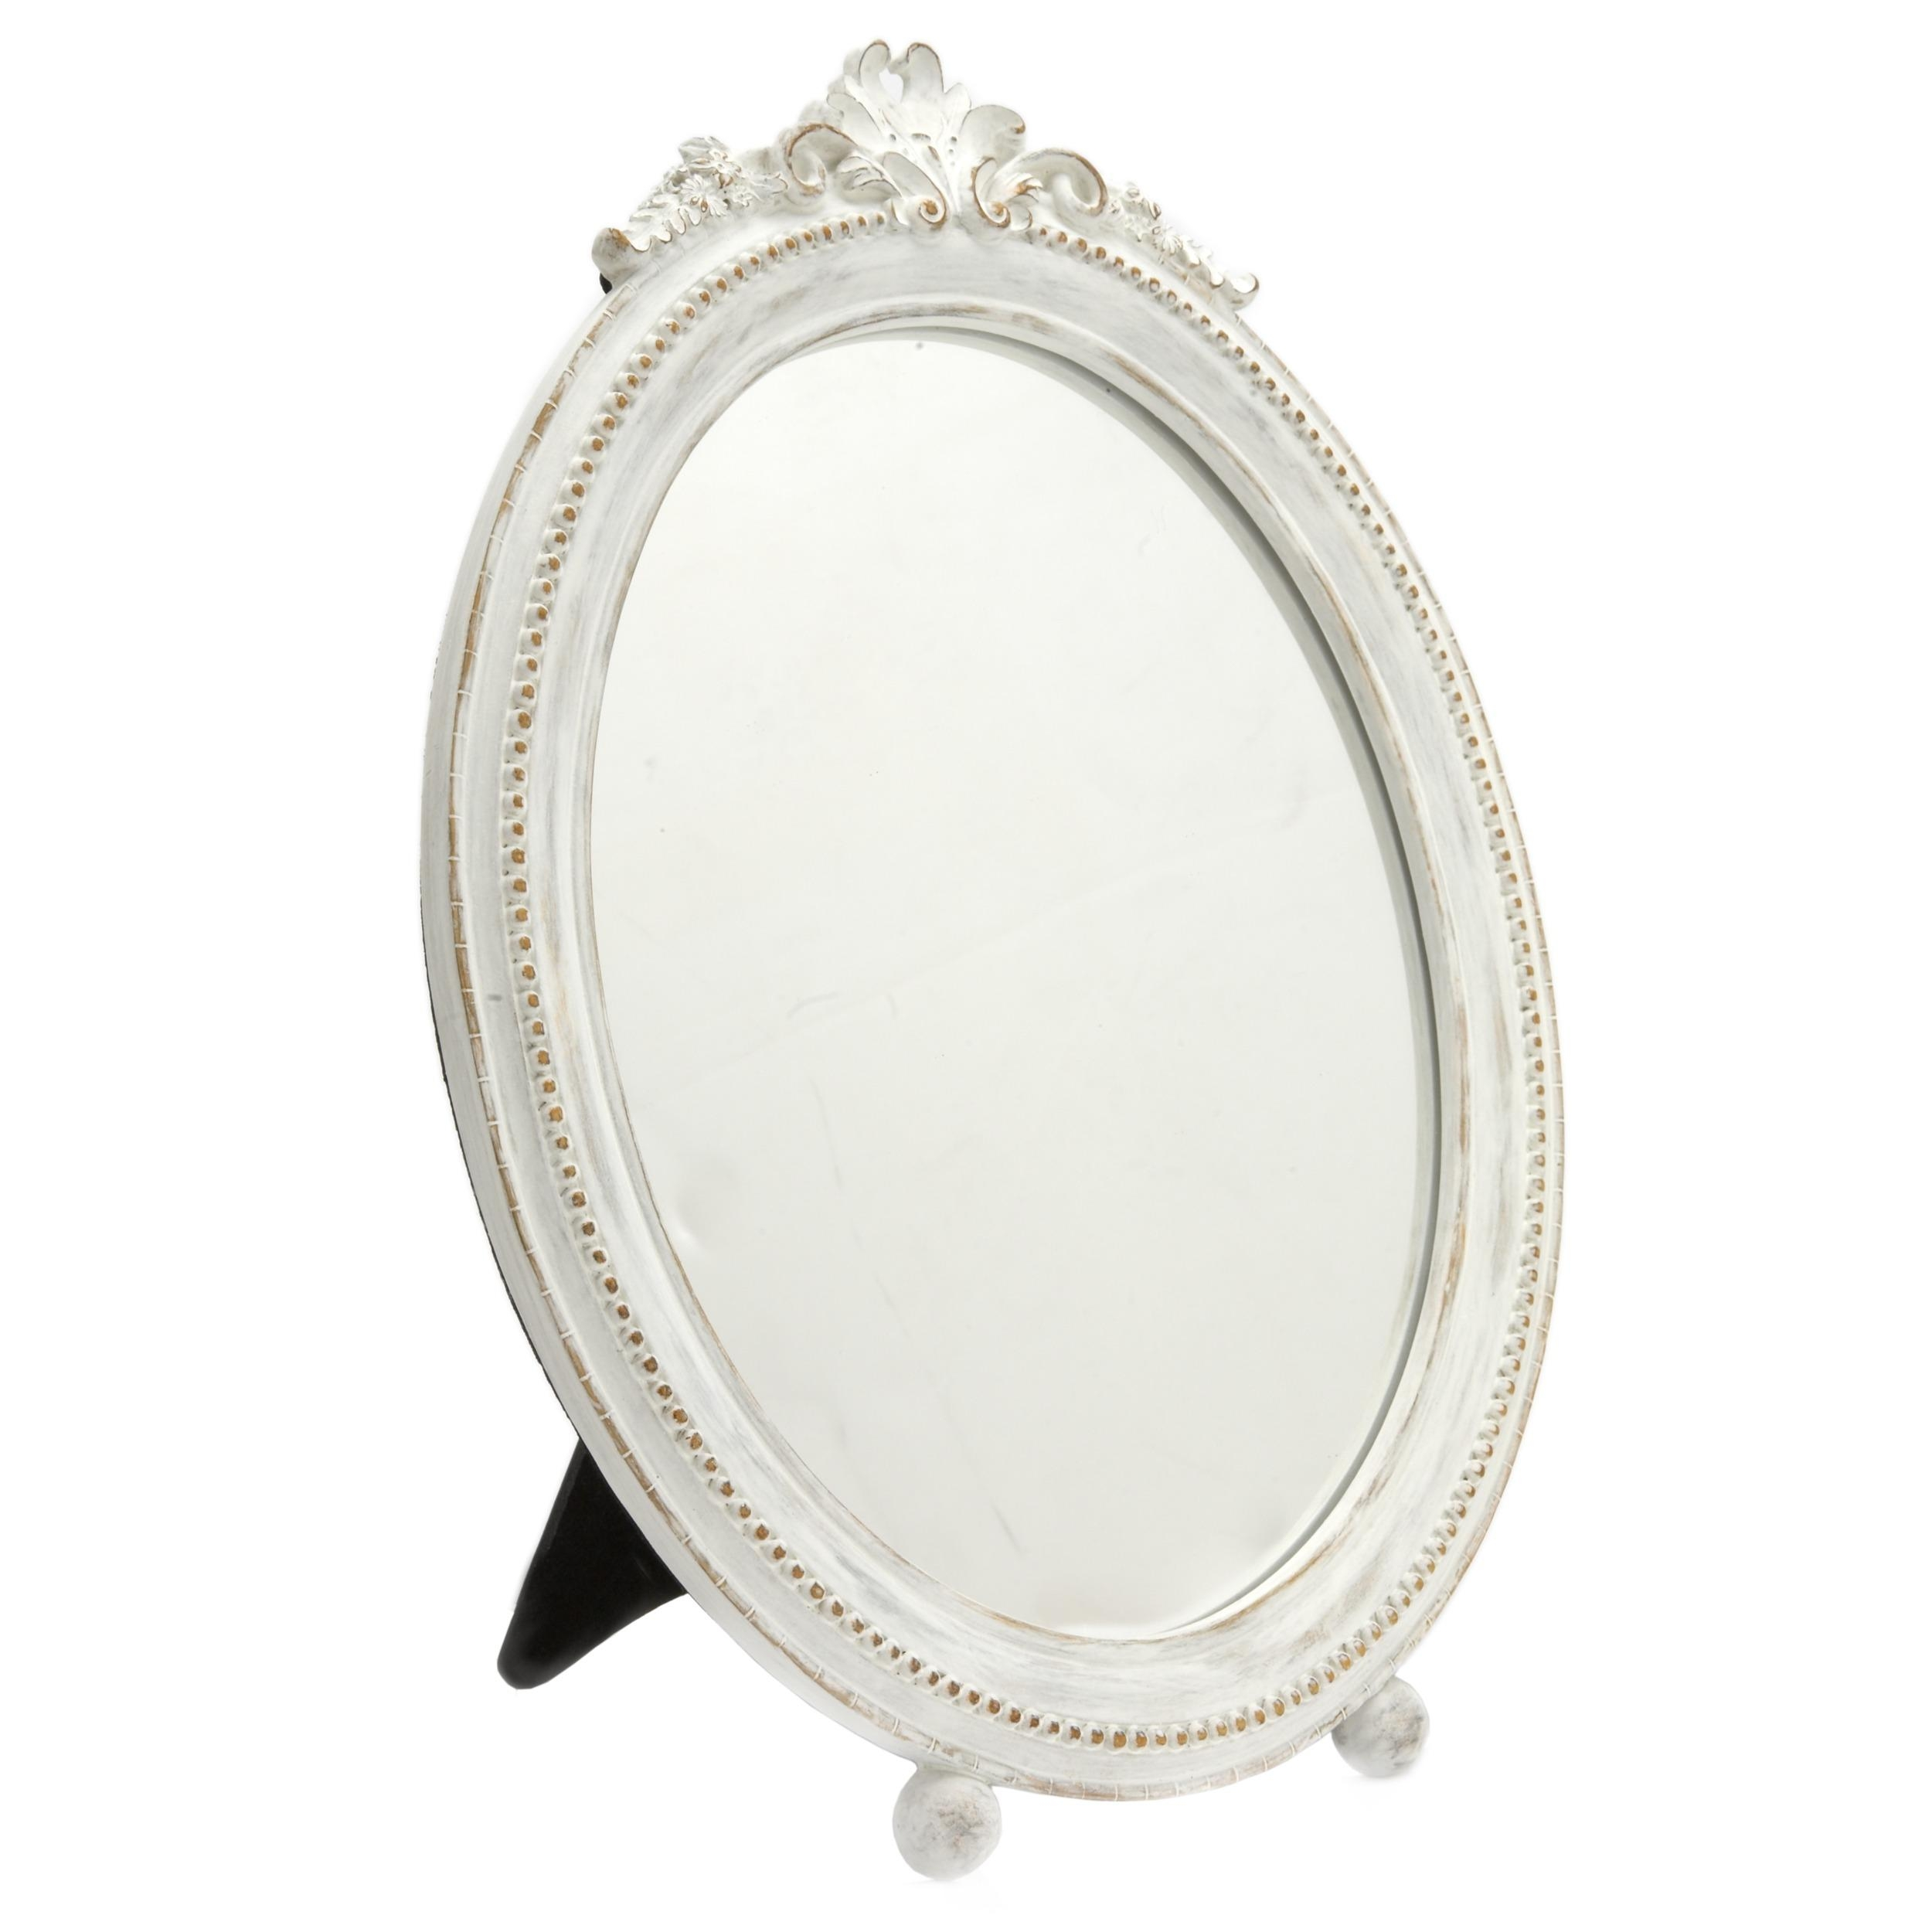 Wonderful Table Mirrors For Wedding And Party Centerpieces Round Intended For Small Free Standing Mirror (Image 20 of 20)